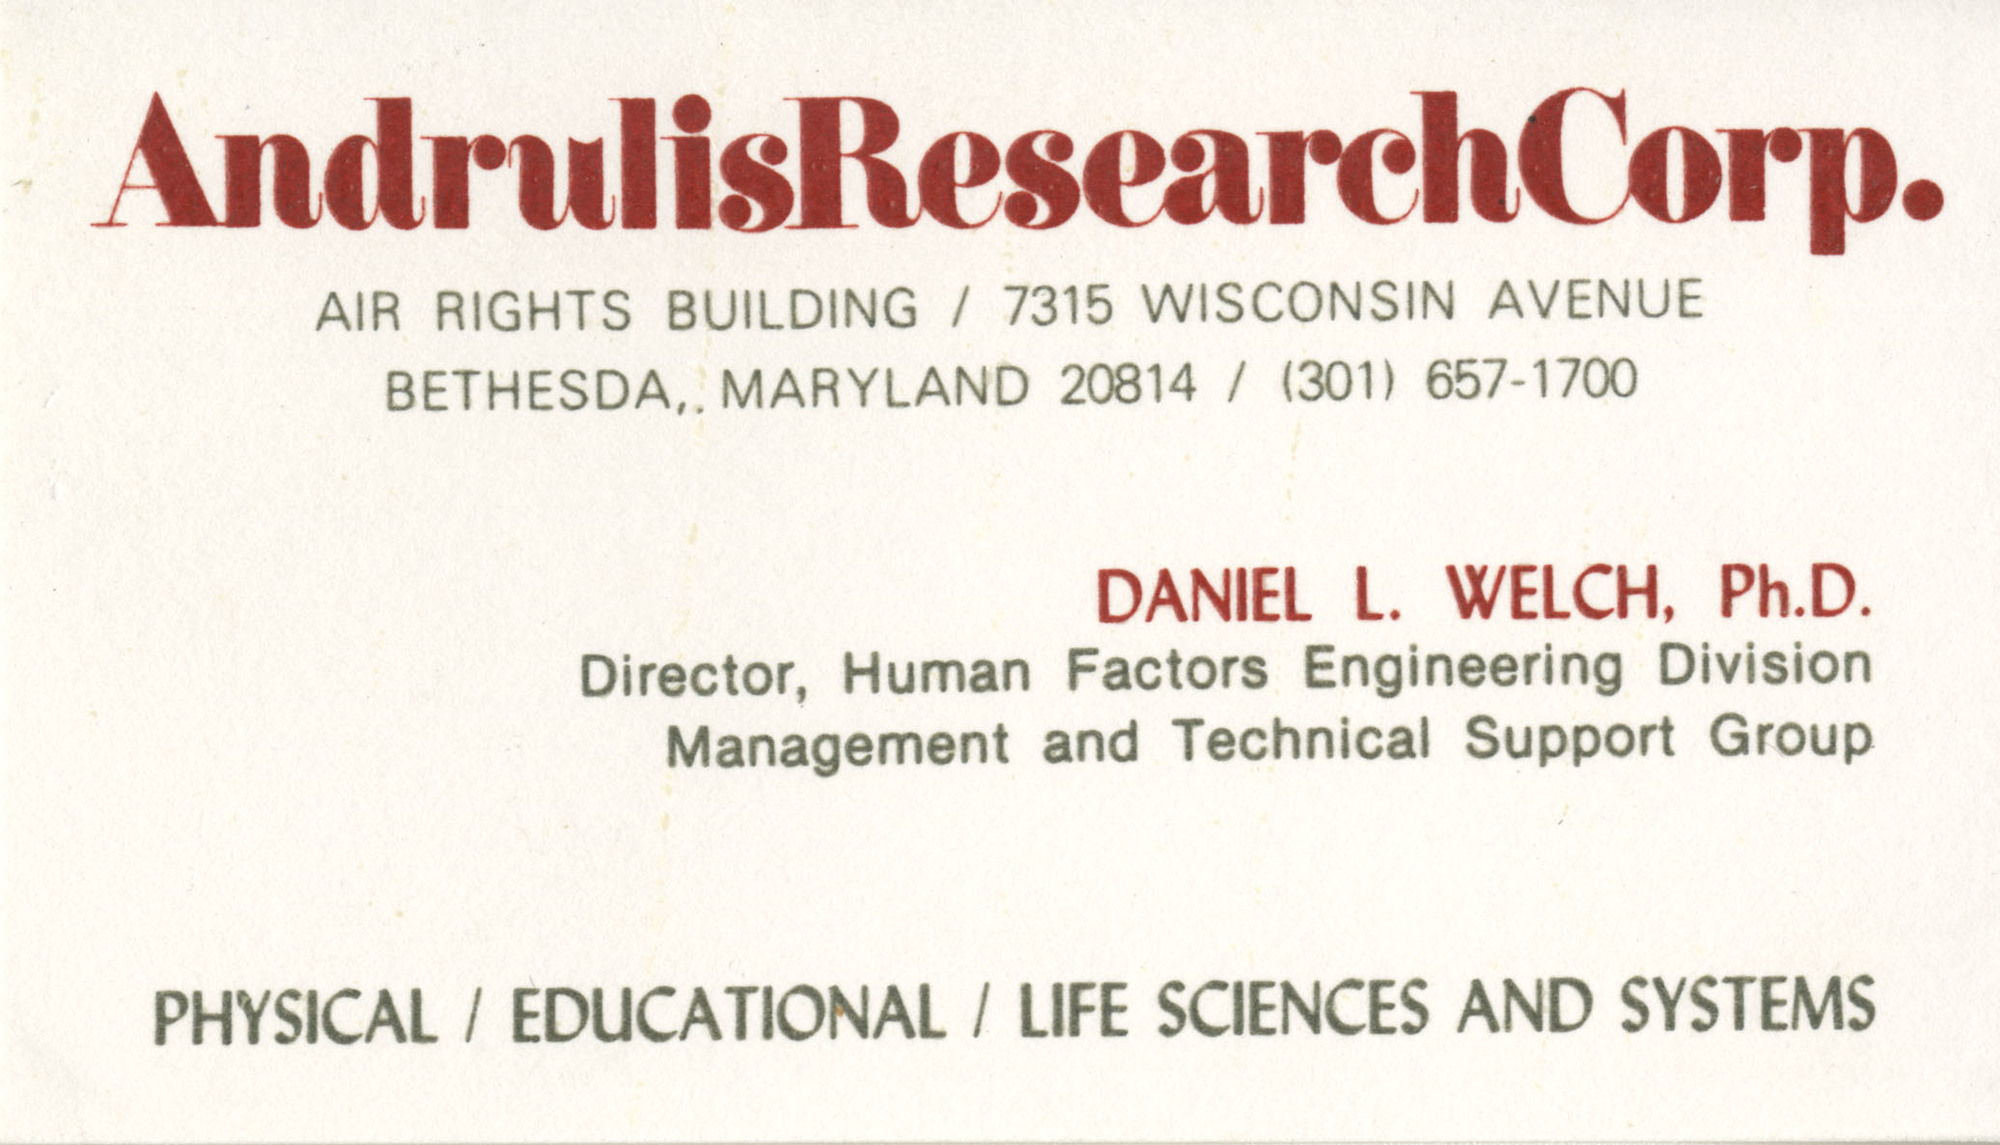 http://spec.lib.vt.edu/pickup/Omeka_upload/Ms1989-029_B19_F2_BusinessCard_ND_01.jpg